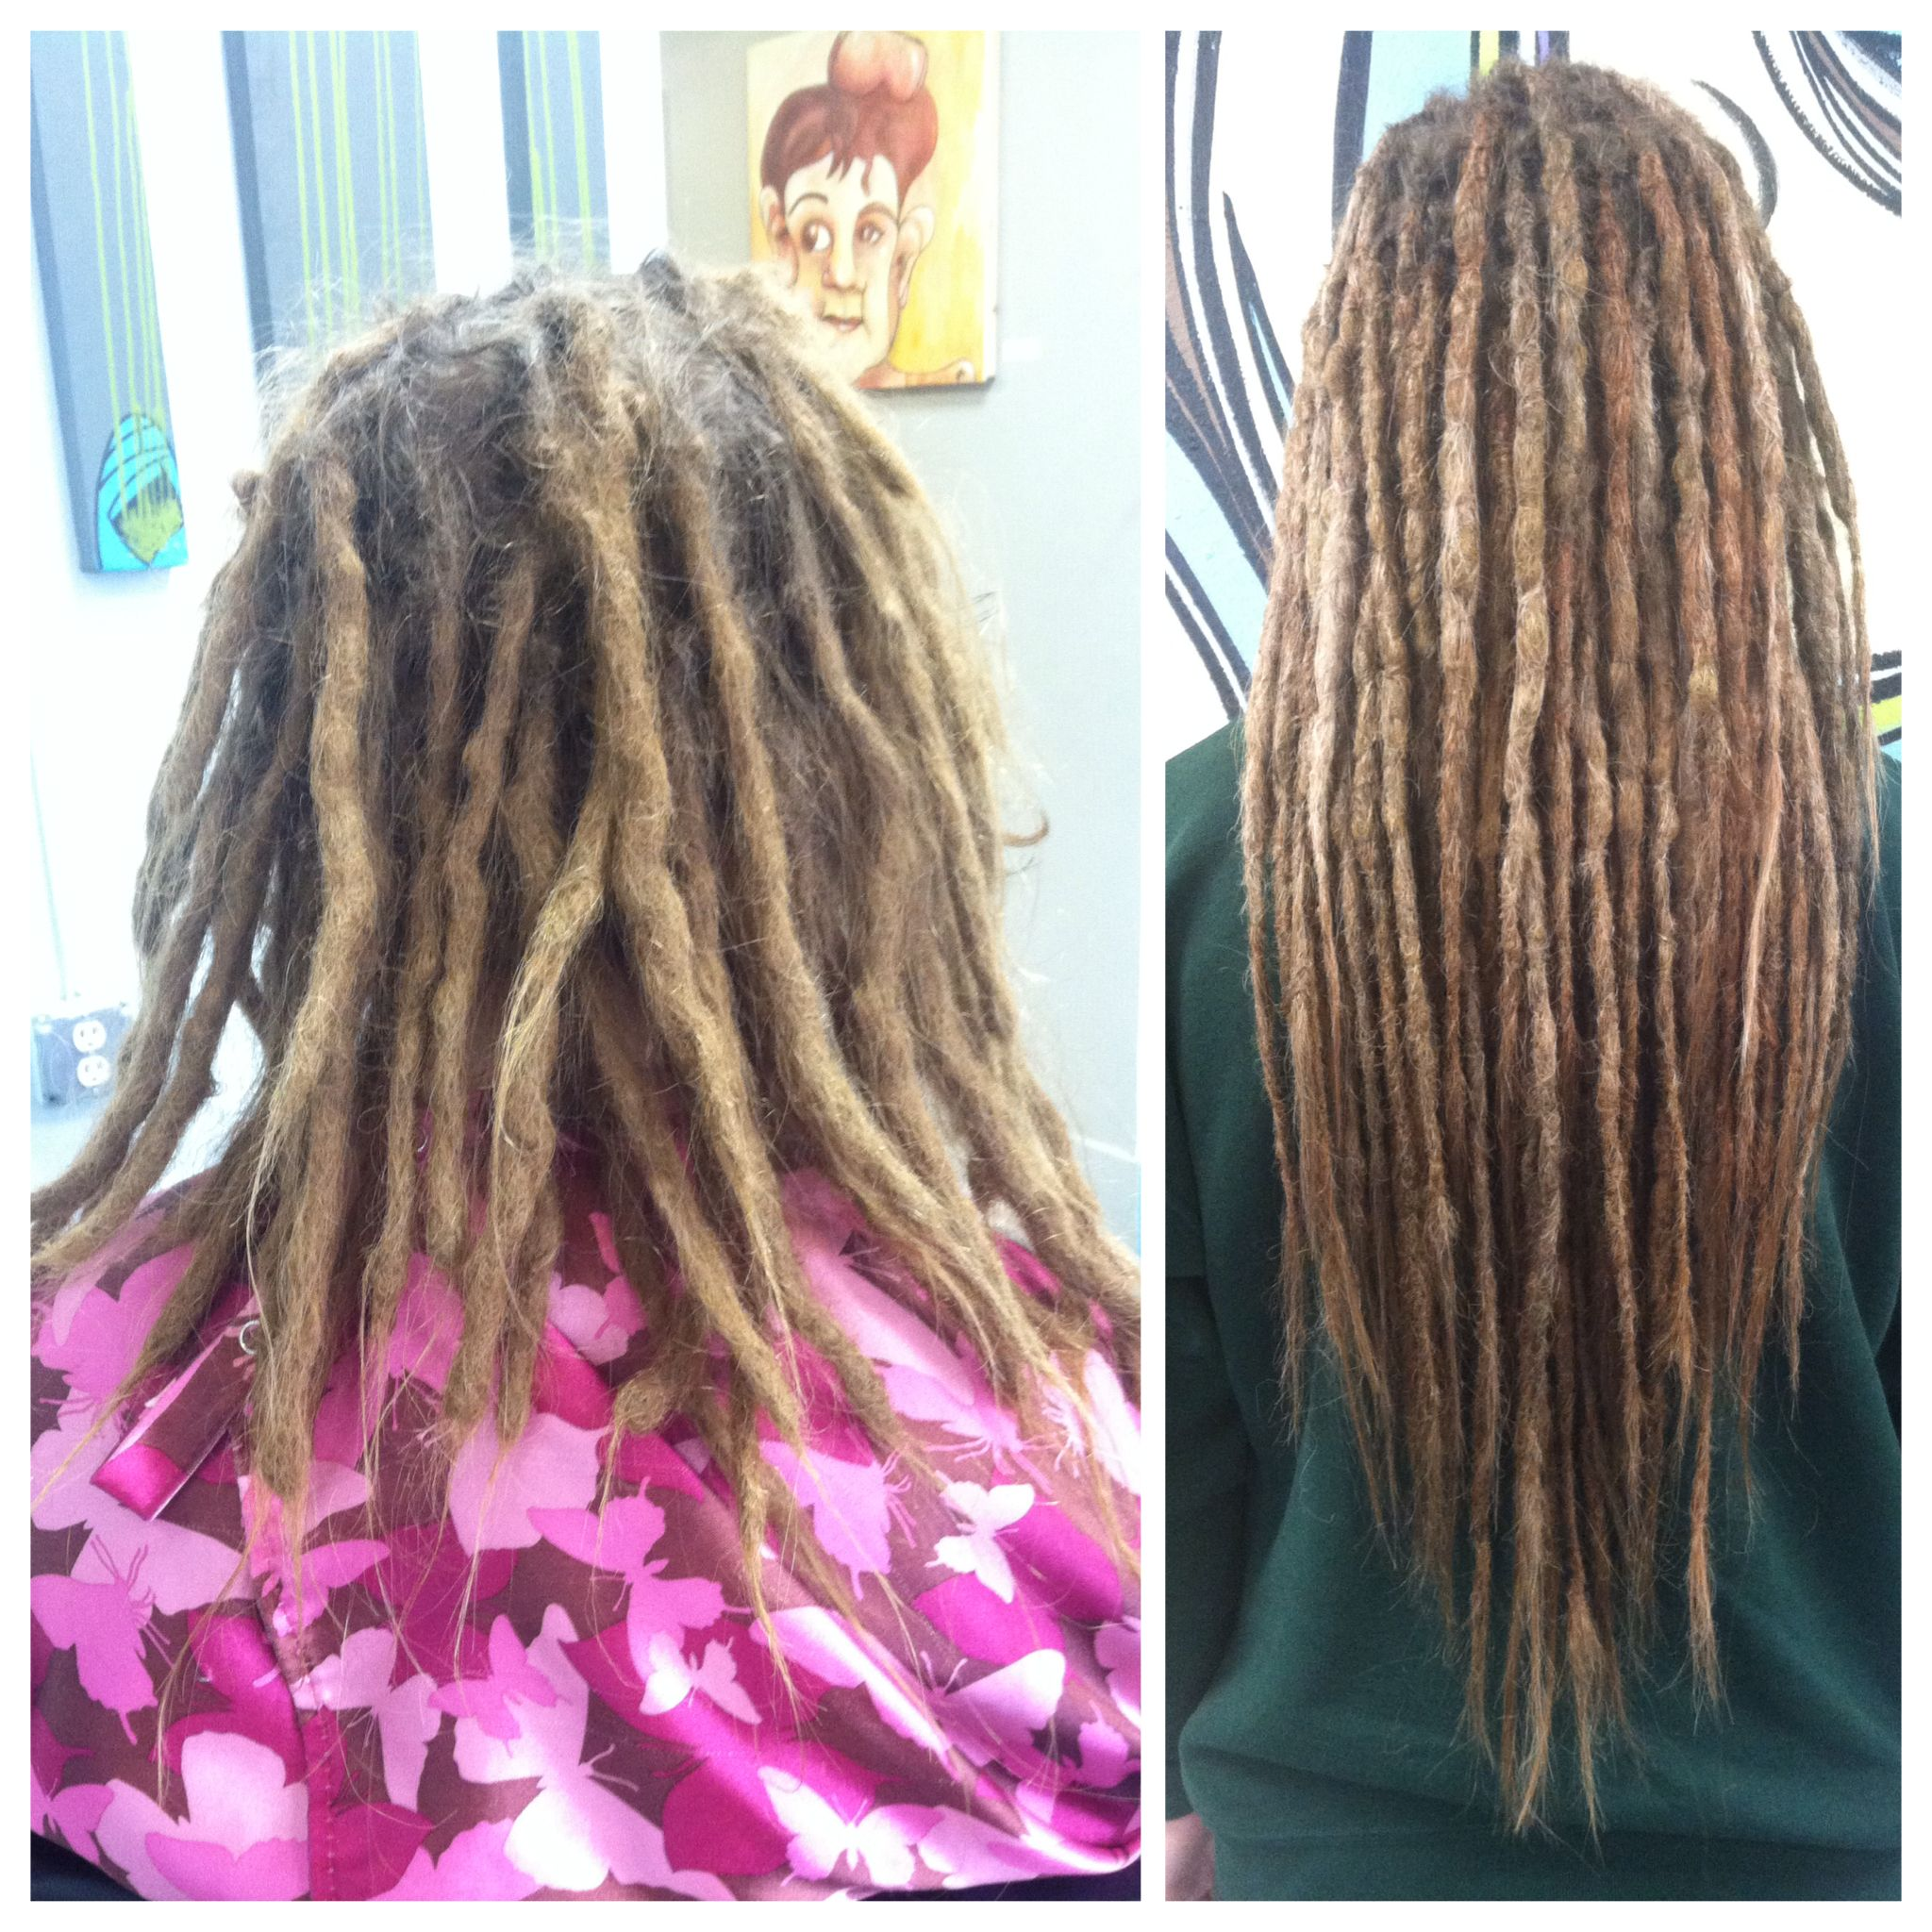 Dread lock maintenance and extensions at g spot hair design des dread lock maintenance and extensions at g spot hair design des moines pmusecretfo Choice Image